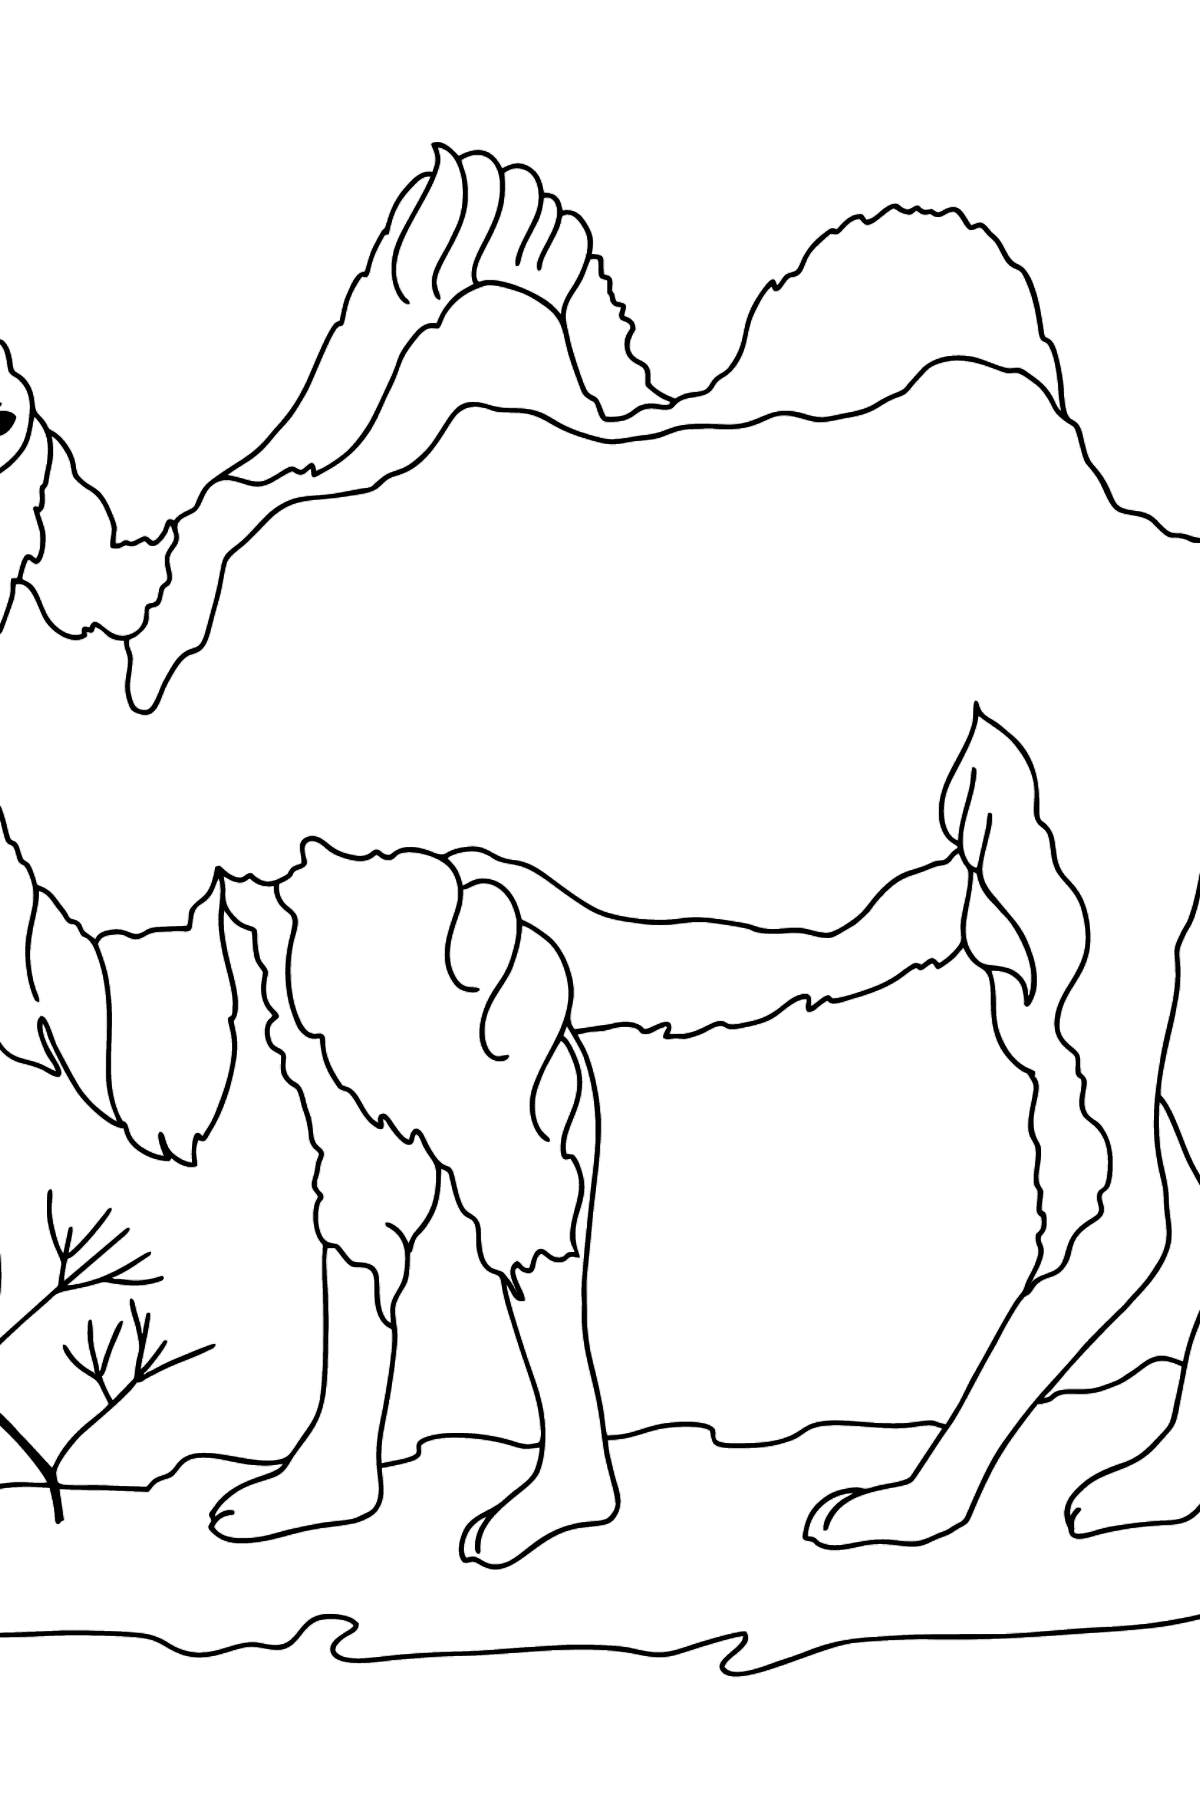 Camel Coloring Page - Coloring Pages for Kids